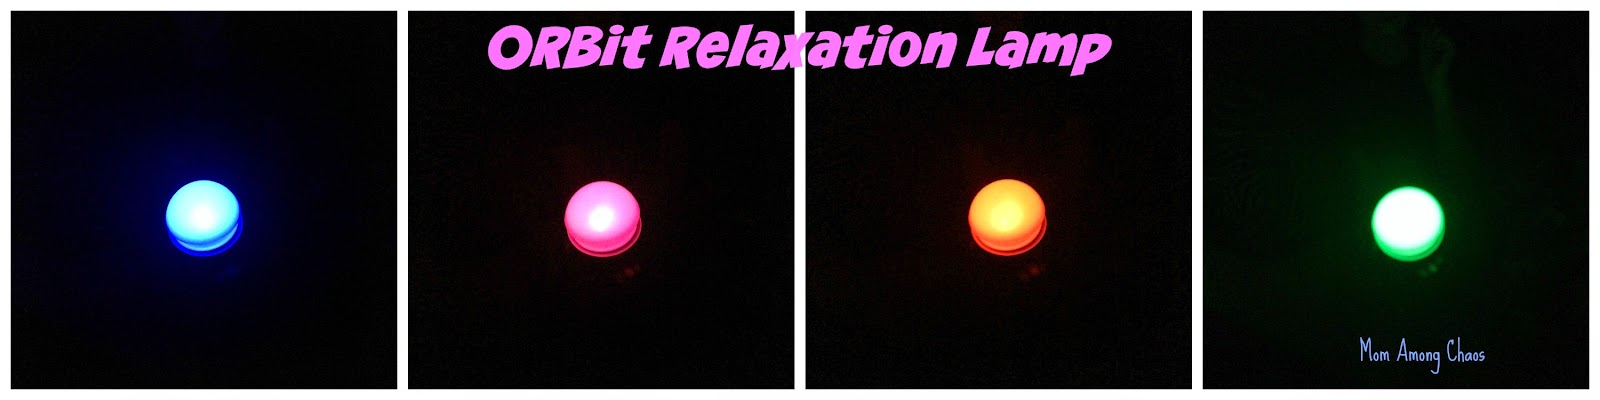 lamp, light, ORBit, relaxation, verilux,